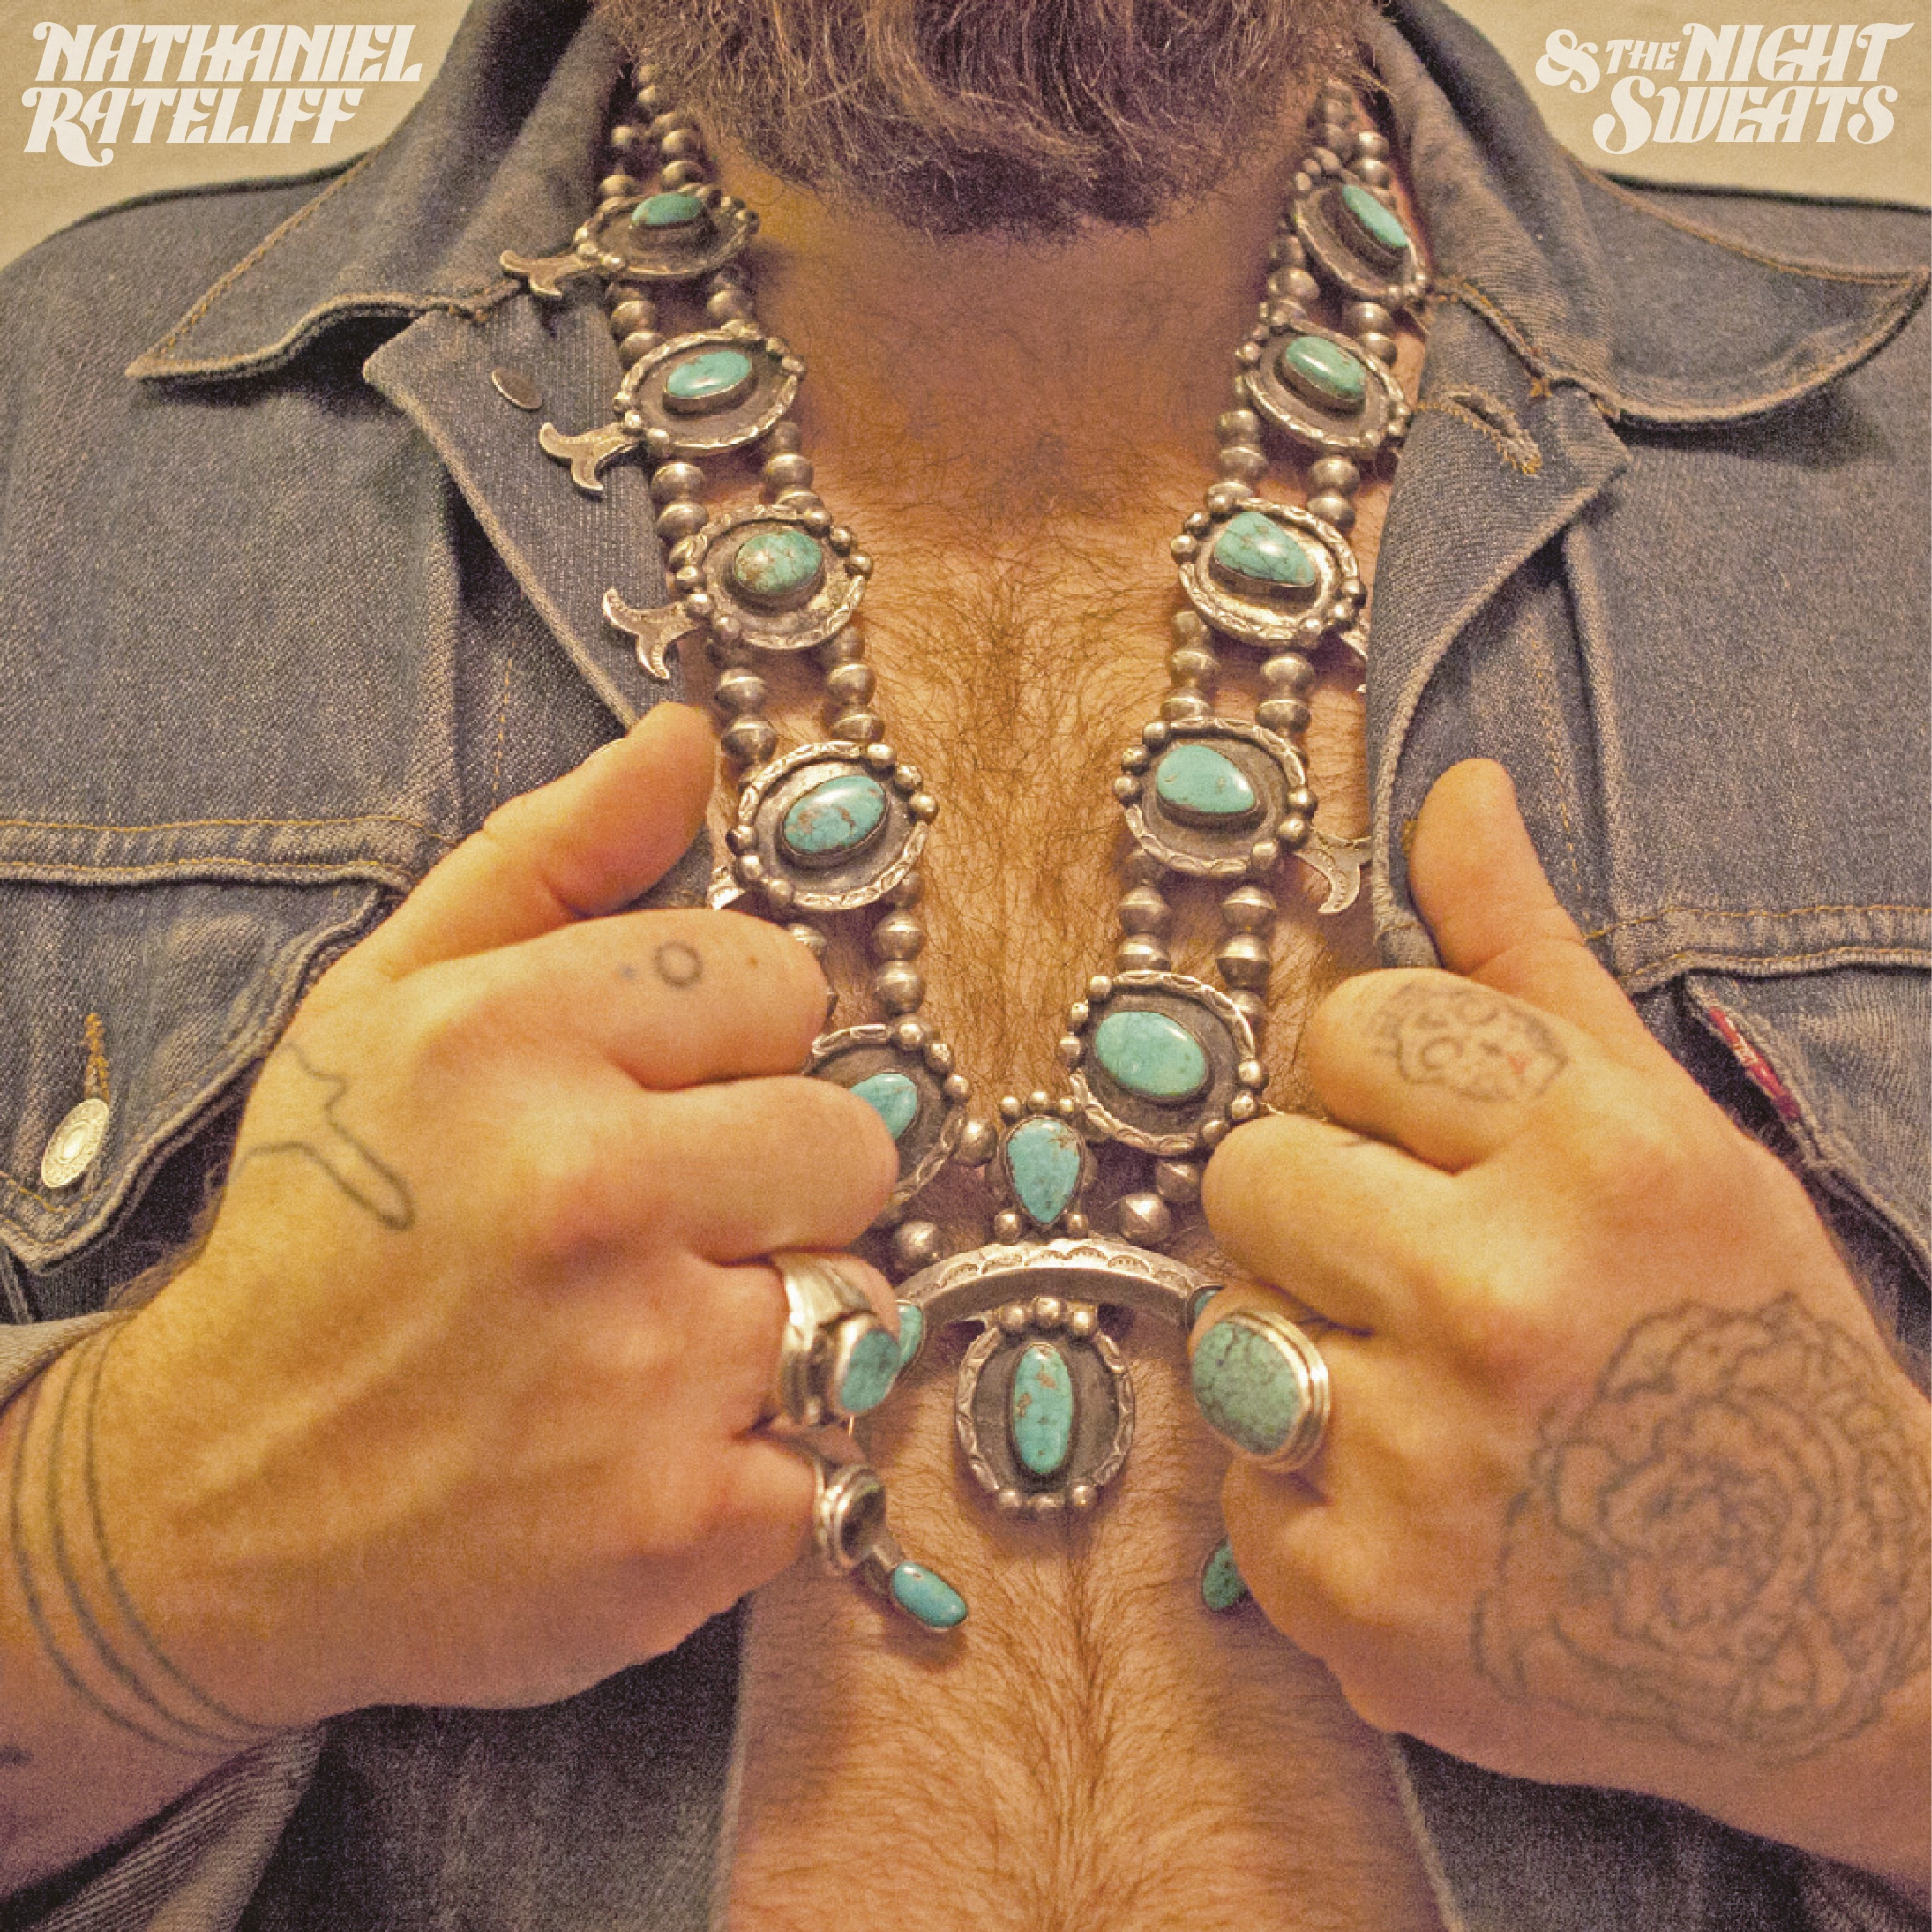 Image result for nathaniel rateliff and the night sweats album cover